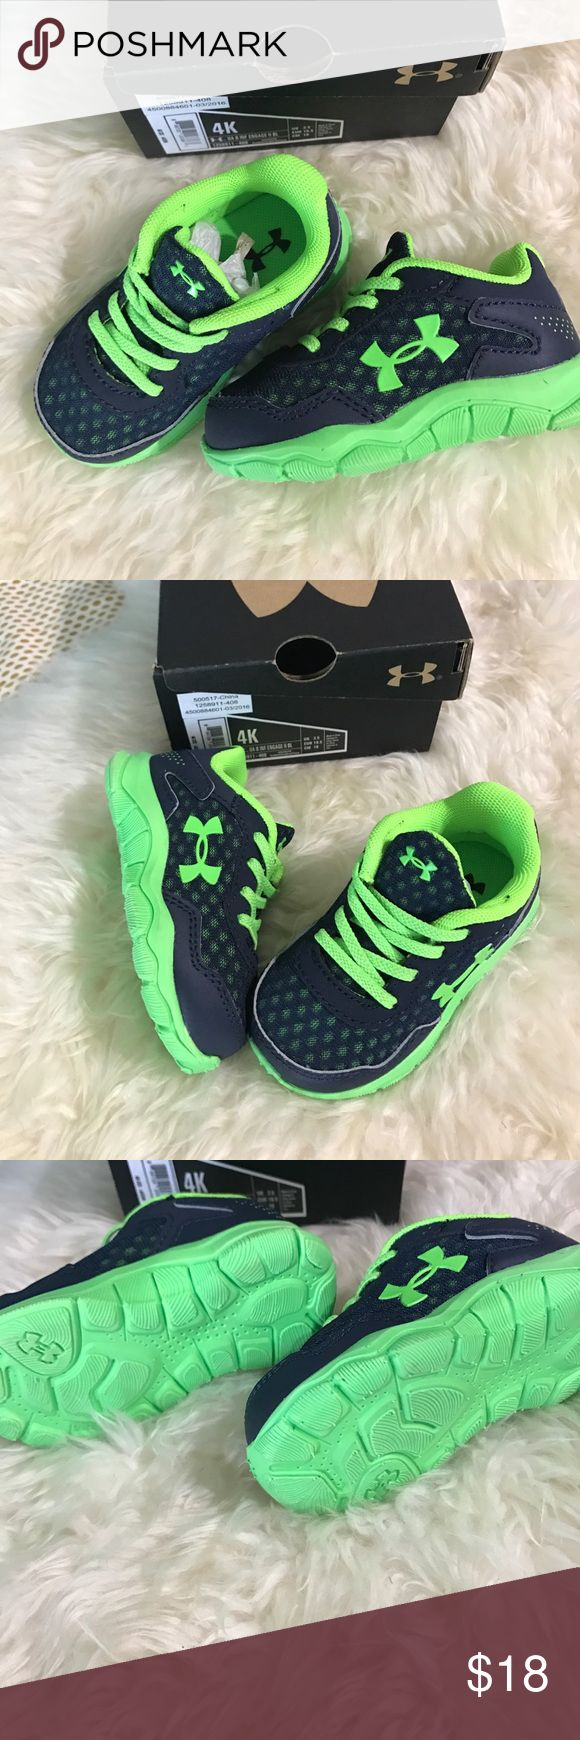 listing! Baby {Under Armour} tennis shoes! My chunky monkey footed boy only wore these once before they were too small! In excellent excellent condition!  The laces are actually elastic so they stretch to put on- navy and lime green and so so cute!! Price is firm unless bundles on this one! Under Armour Shoes Baby & Walker